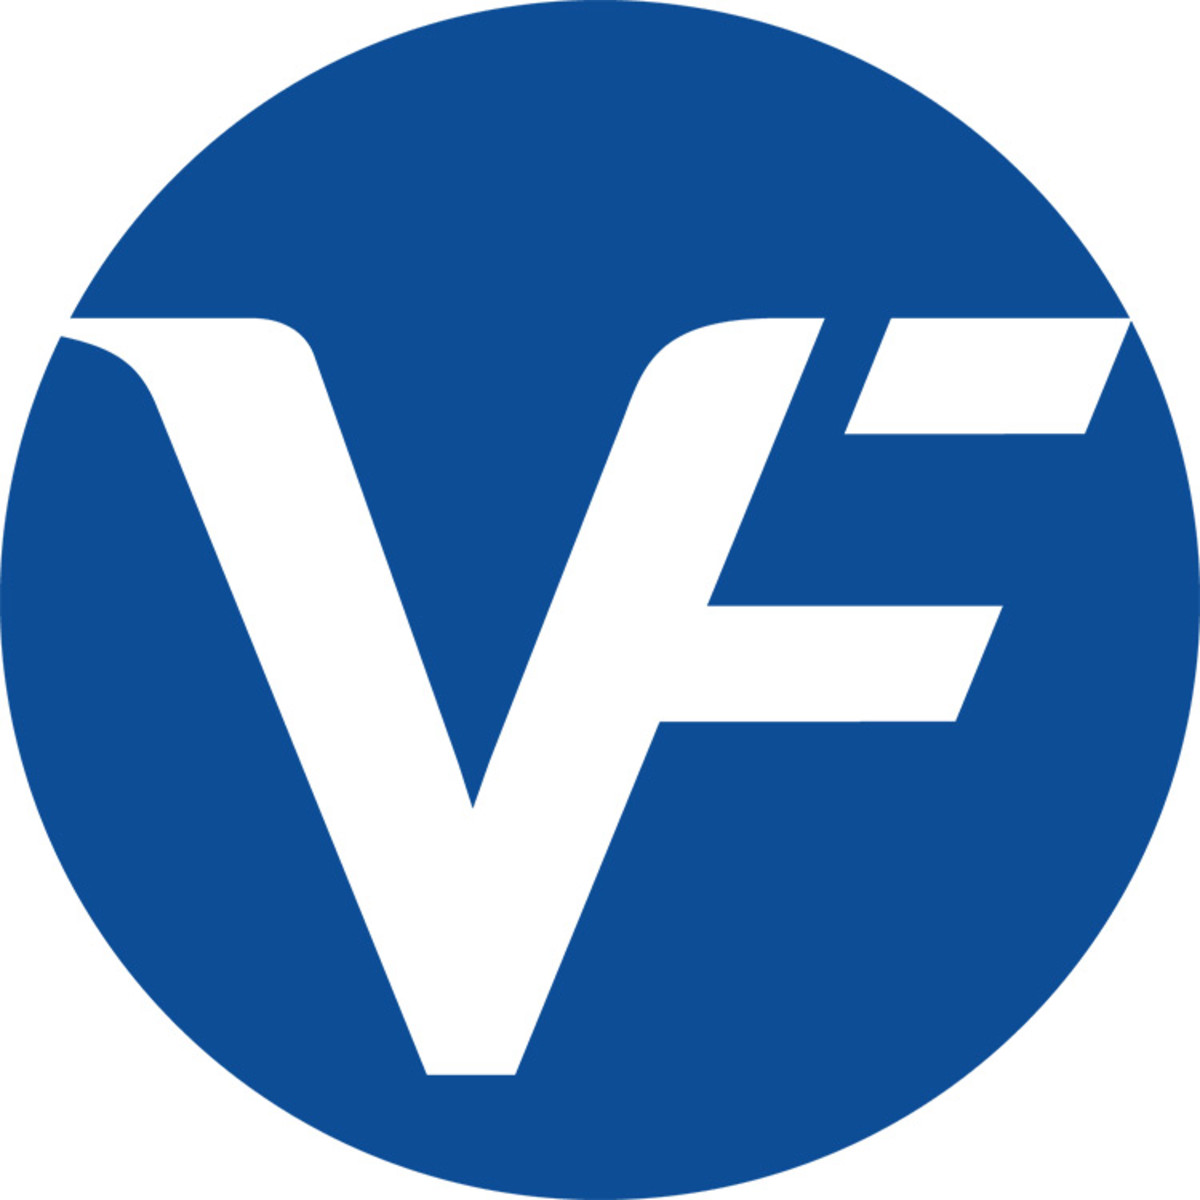 VF updates long-term strategic growth plan